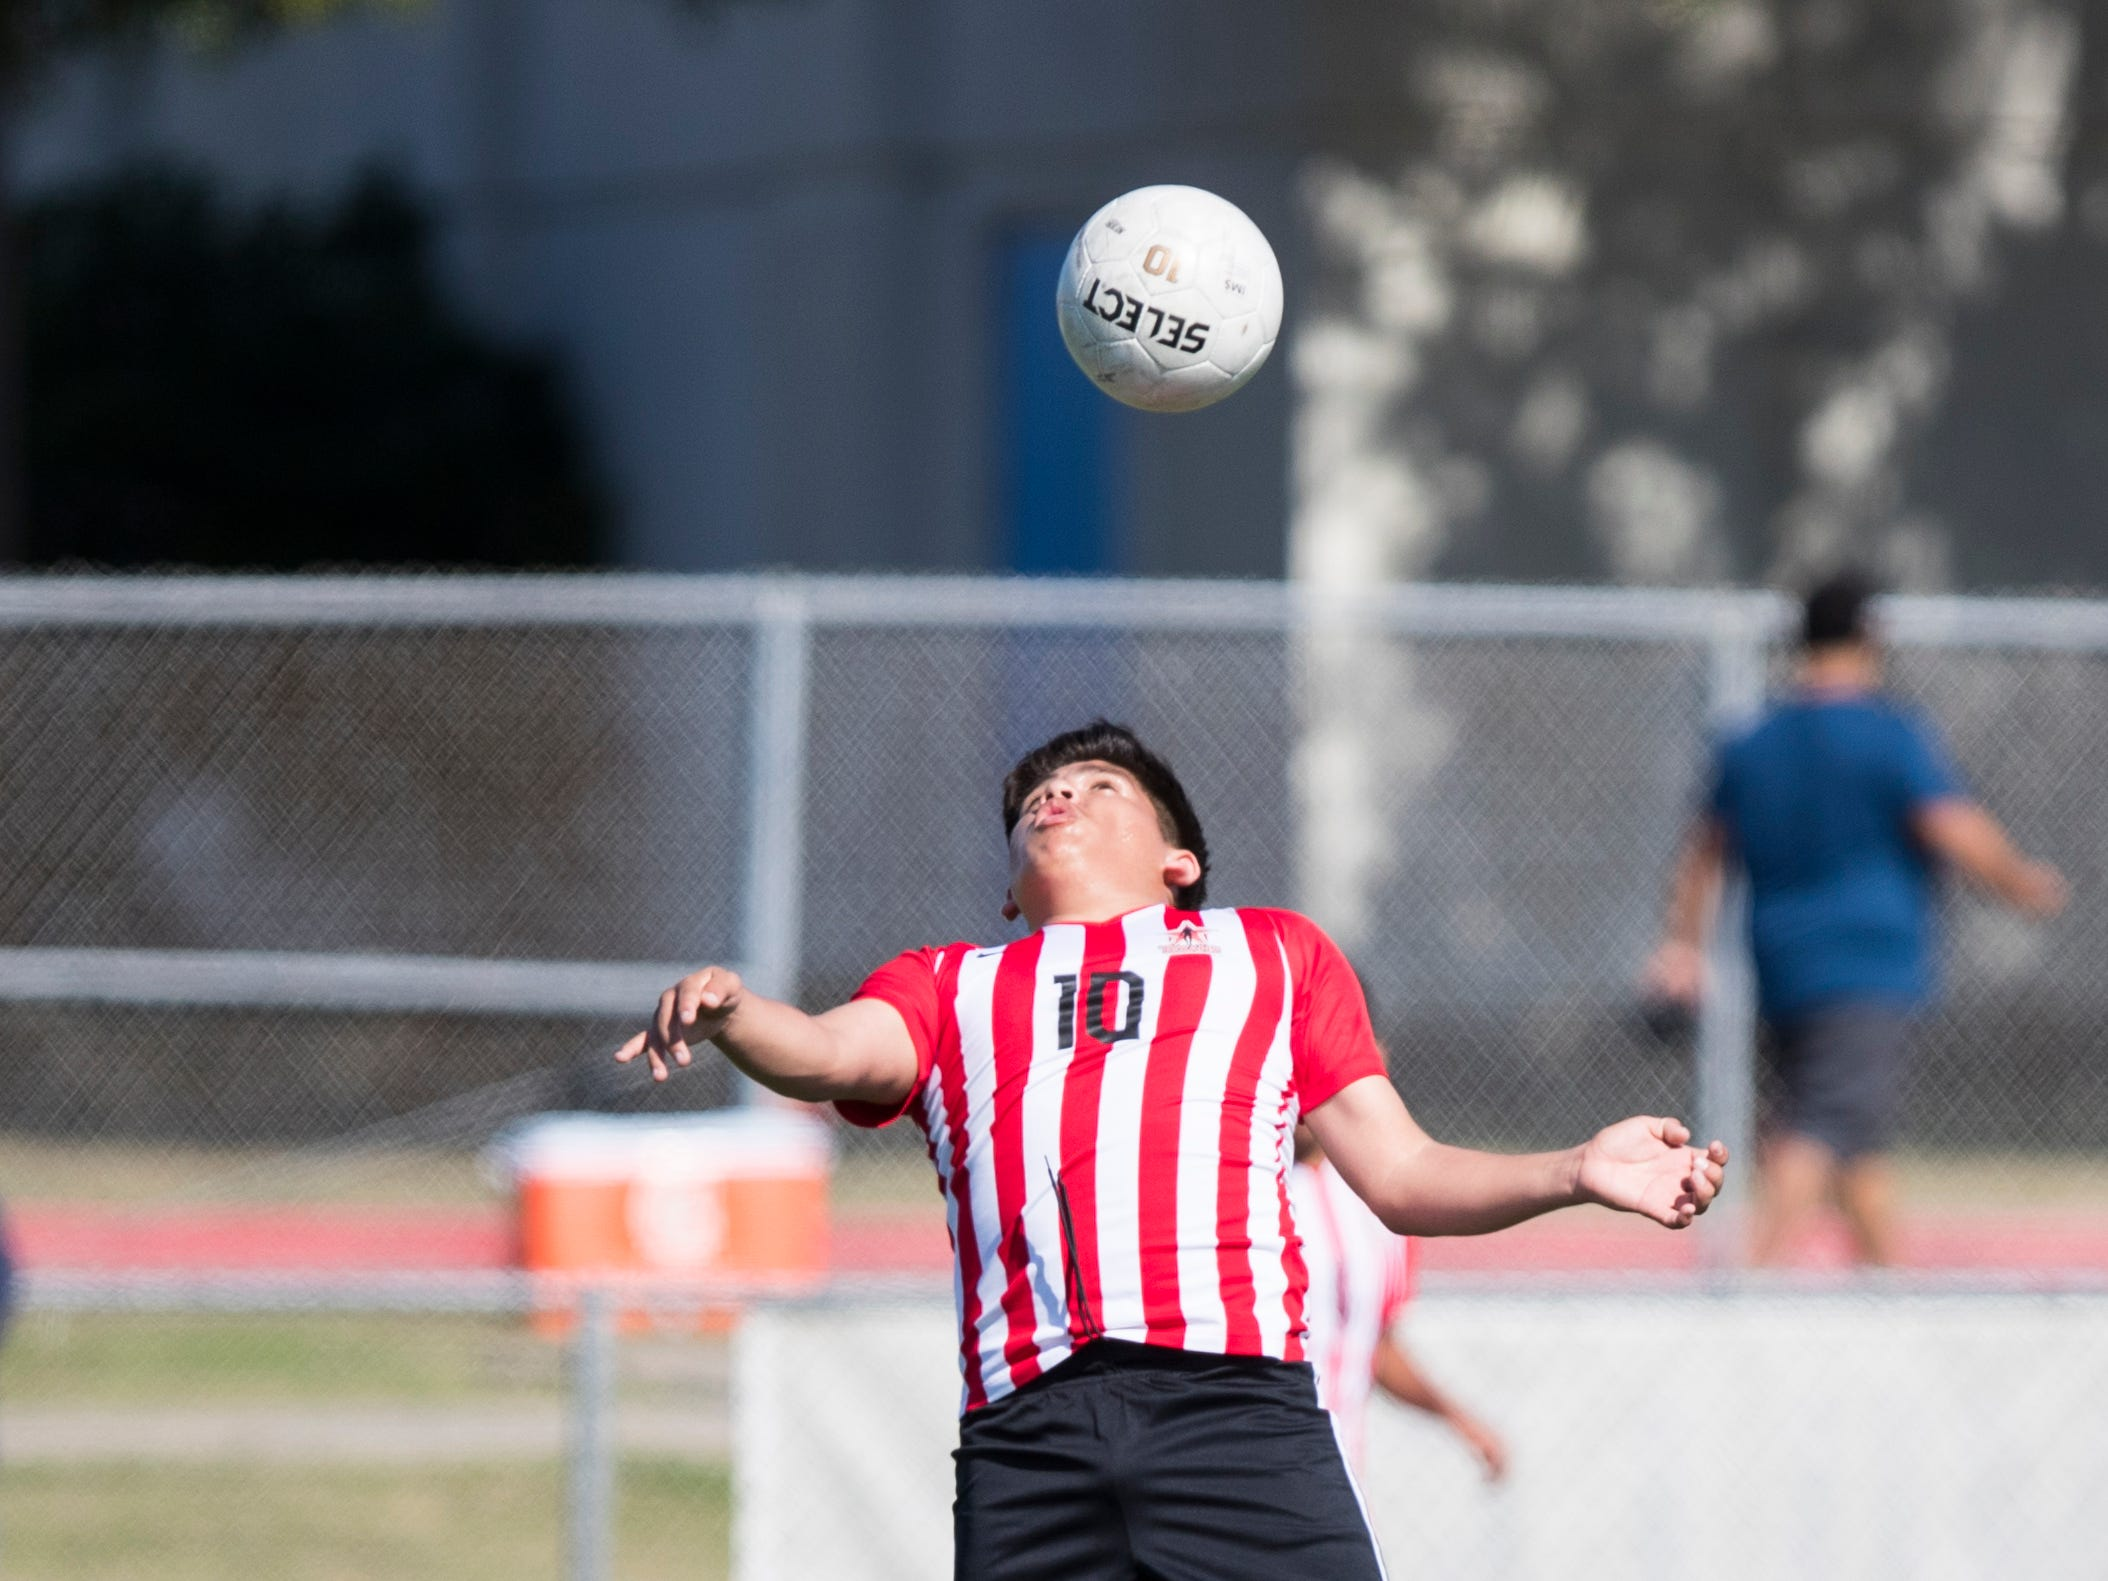 Ray's Yahir Villanueva hits the ball off his head during the game against Kingsville in the Mira's Soccer Tournament at Cabaniss Field on Thursday, January 10, 2019. Ray won the game 2-0.